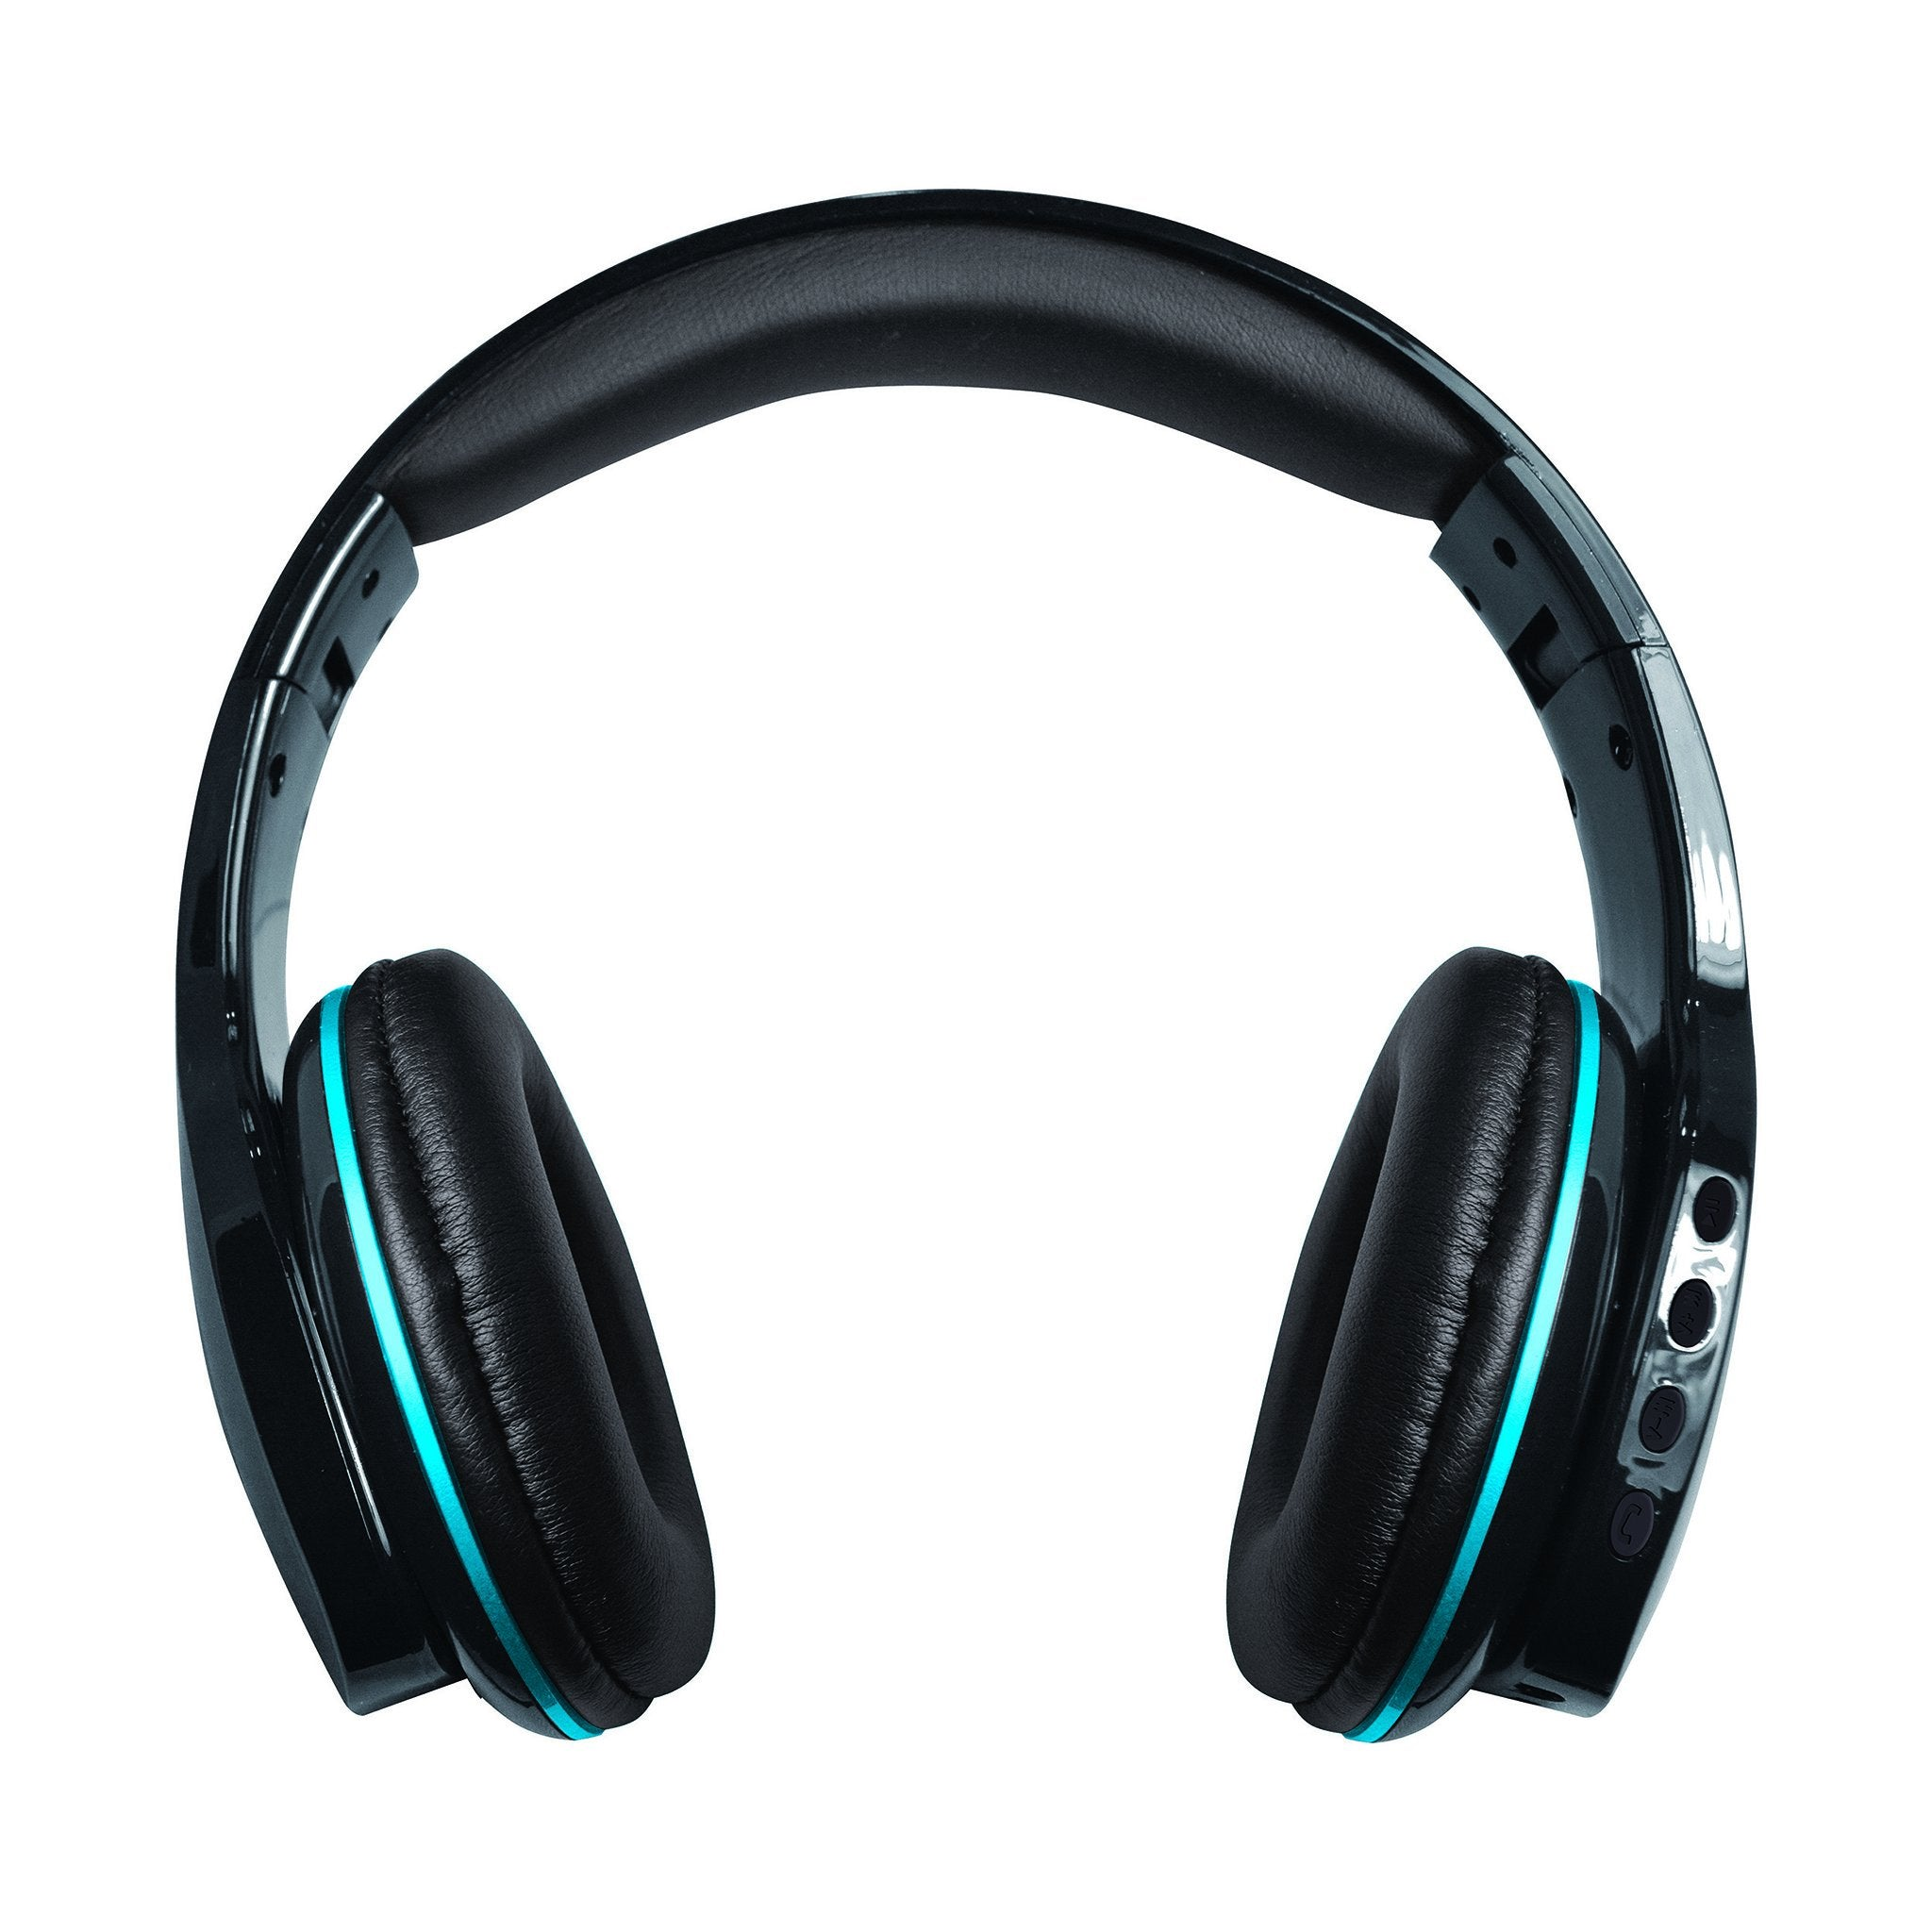 Focus Bluetooth Headphones